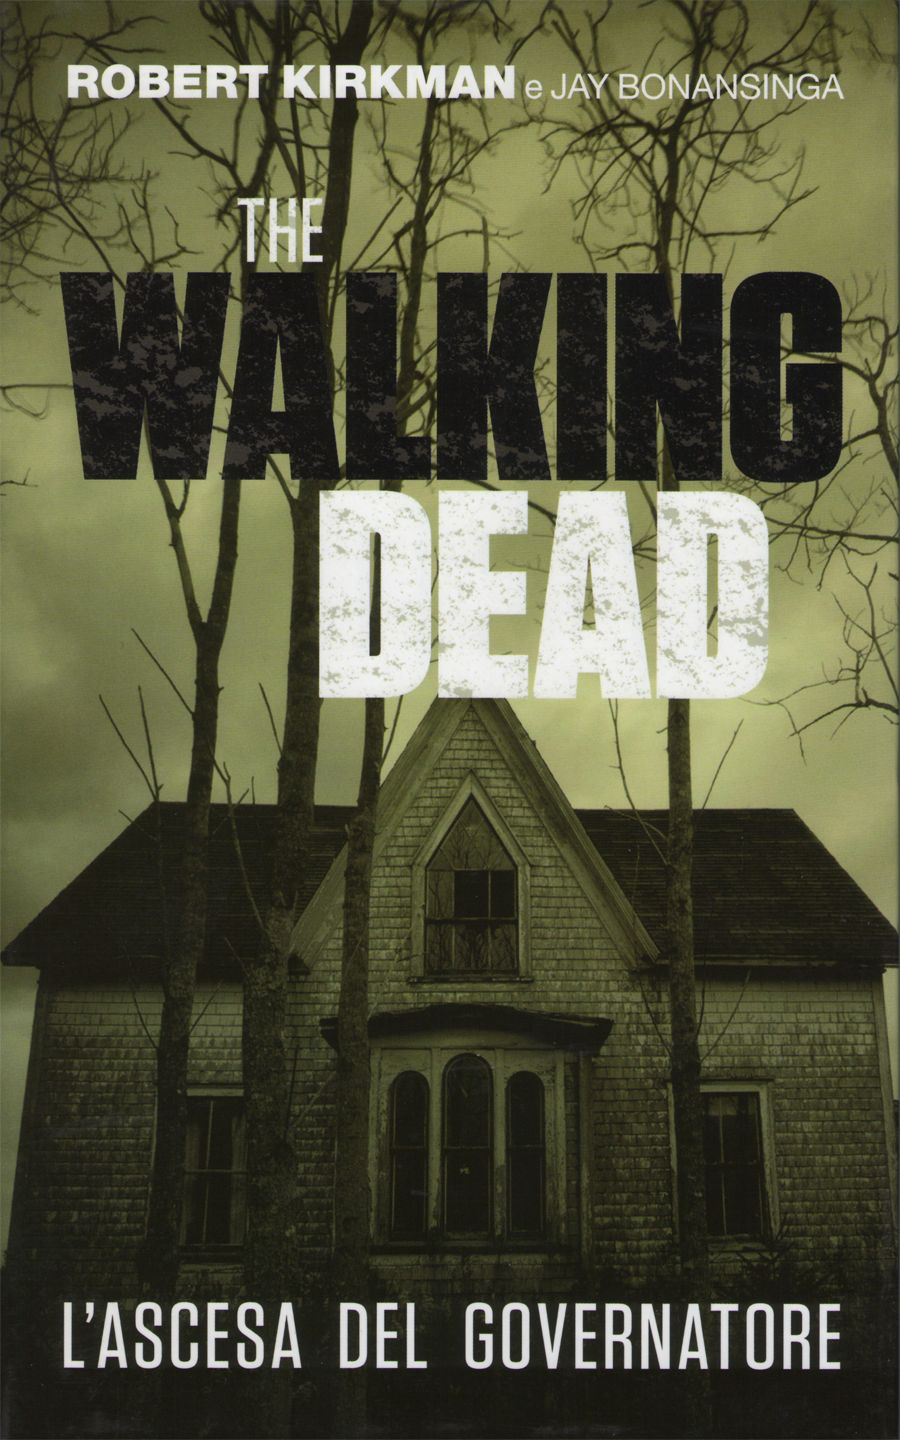 Recensione: The Walking Dead, l'ascesa del Governatore (R. Kirkman - J. Bonansinga)